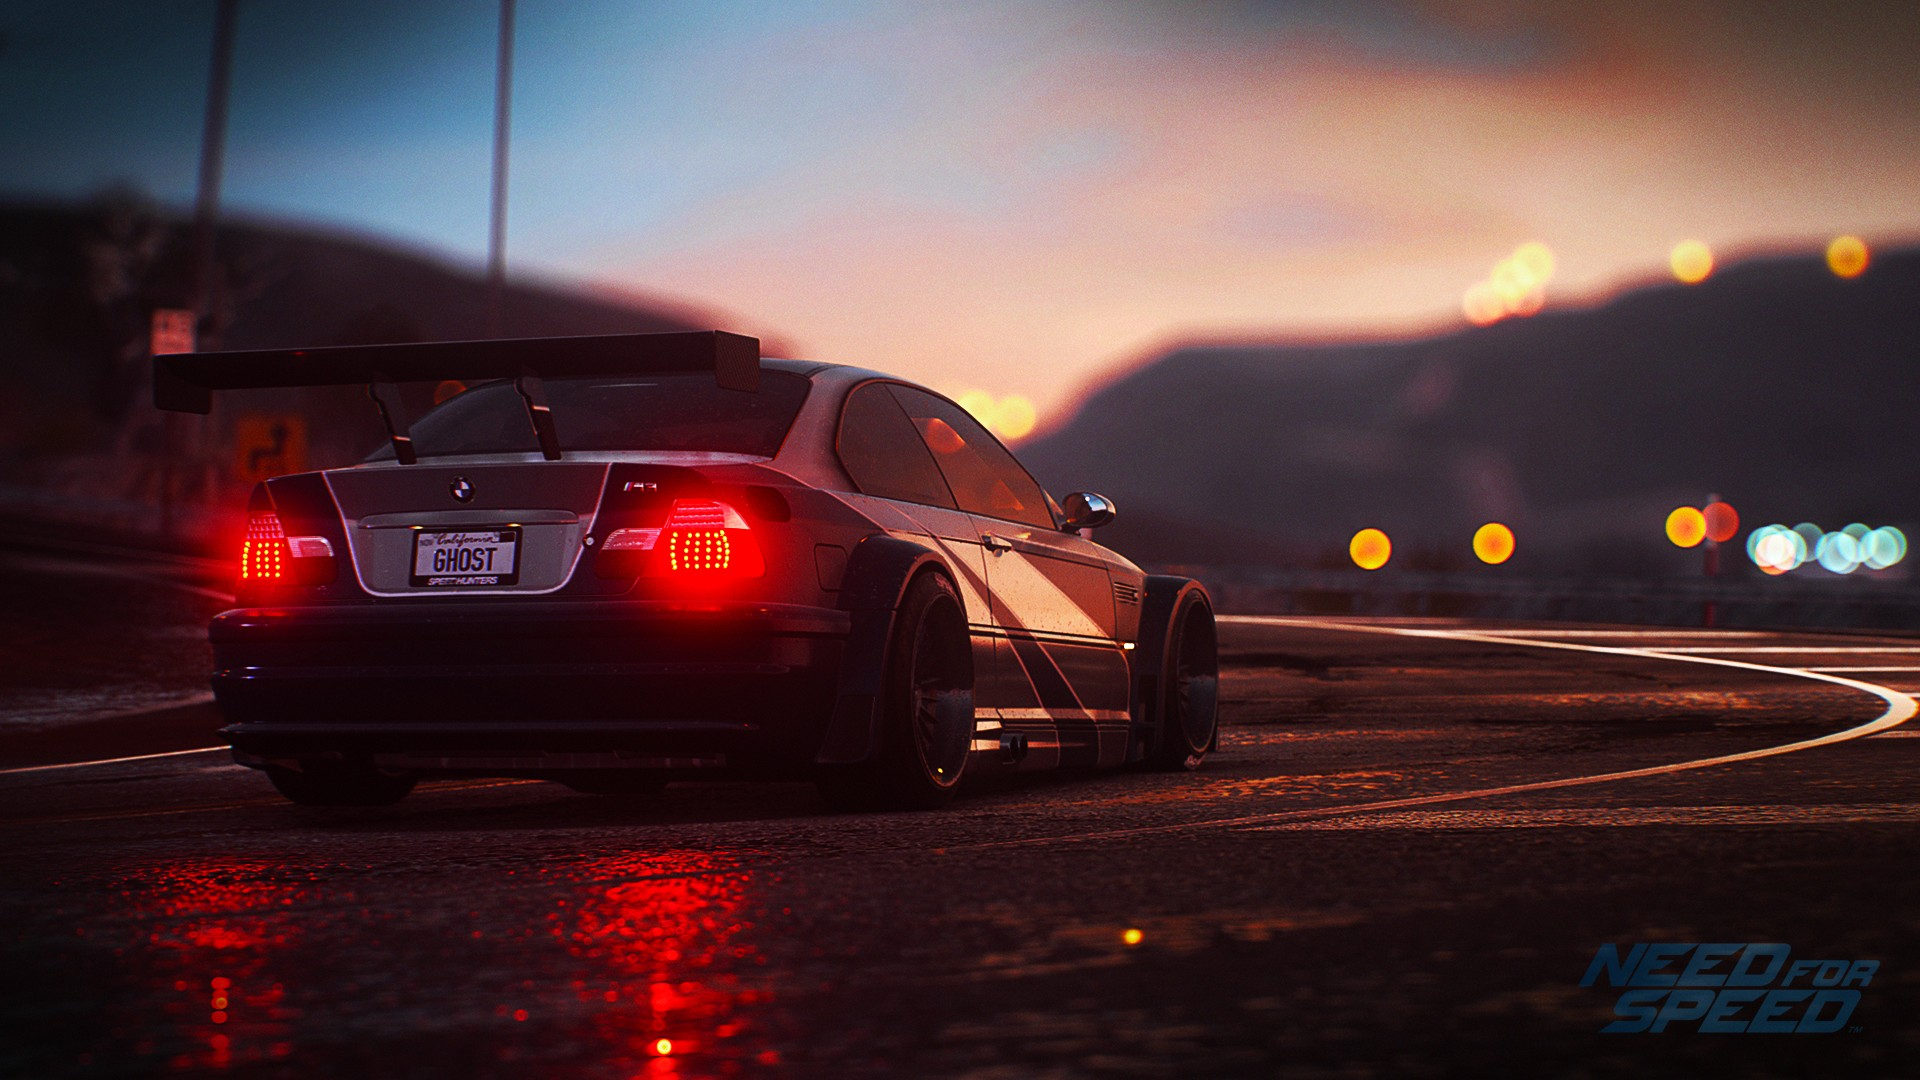 Need for speed background 23 1920x1080 - Speed wallpaper ...